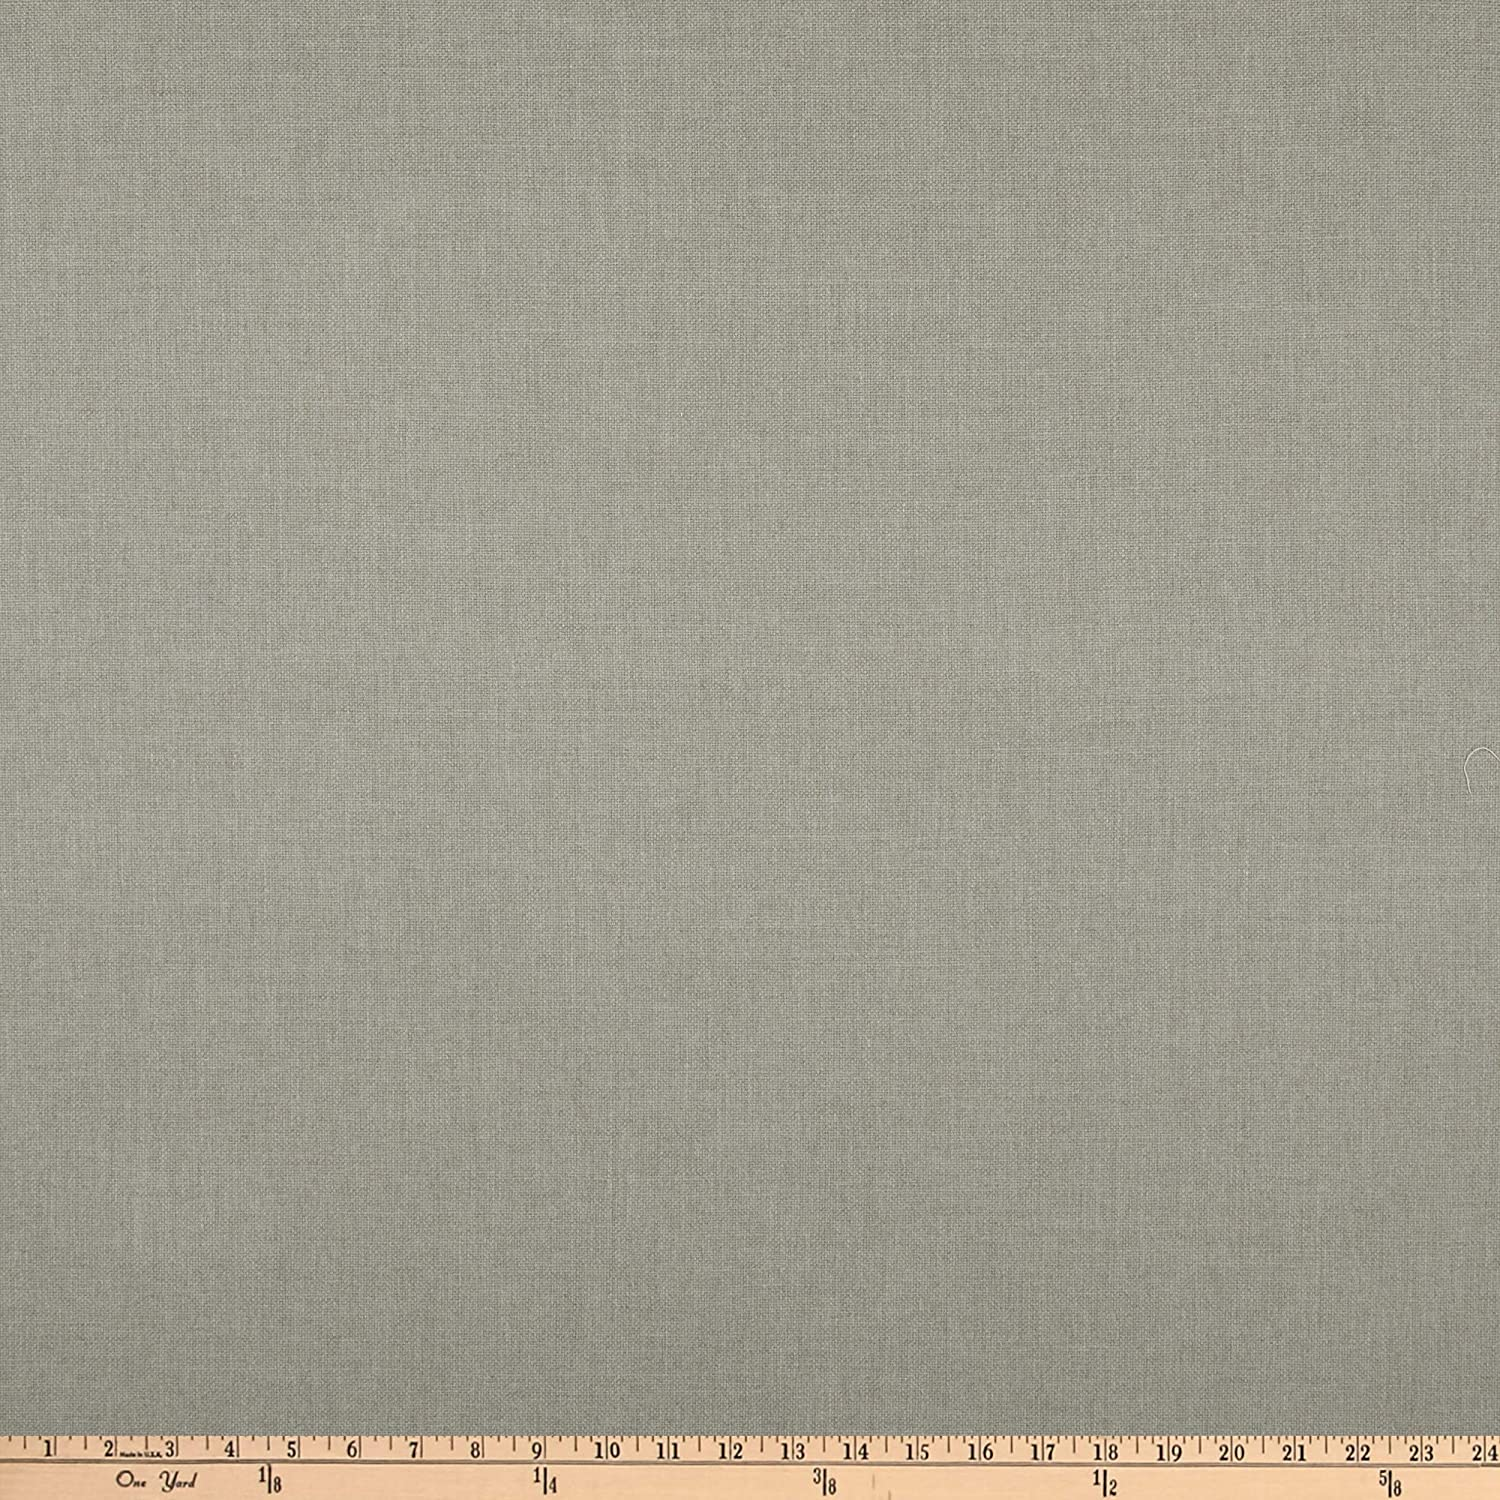 Artistry Performance Linen Bilzen Woven Ya by Los Angeles Mall Chrome the Fabric OFFicial